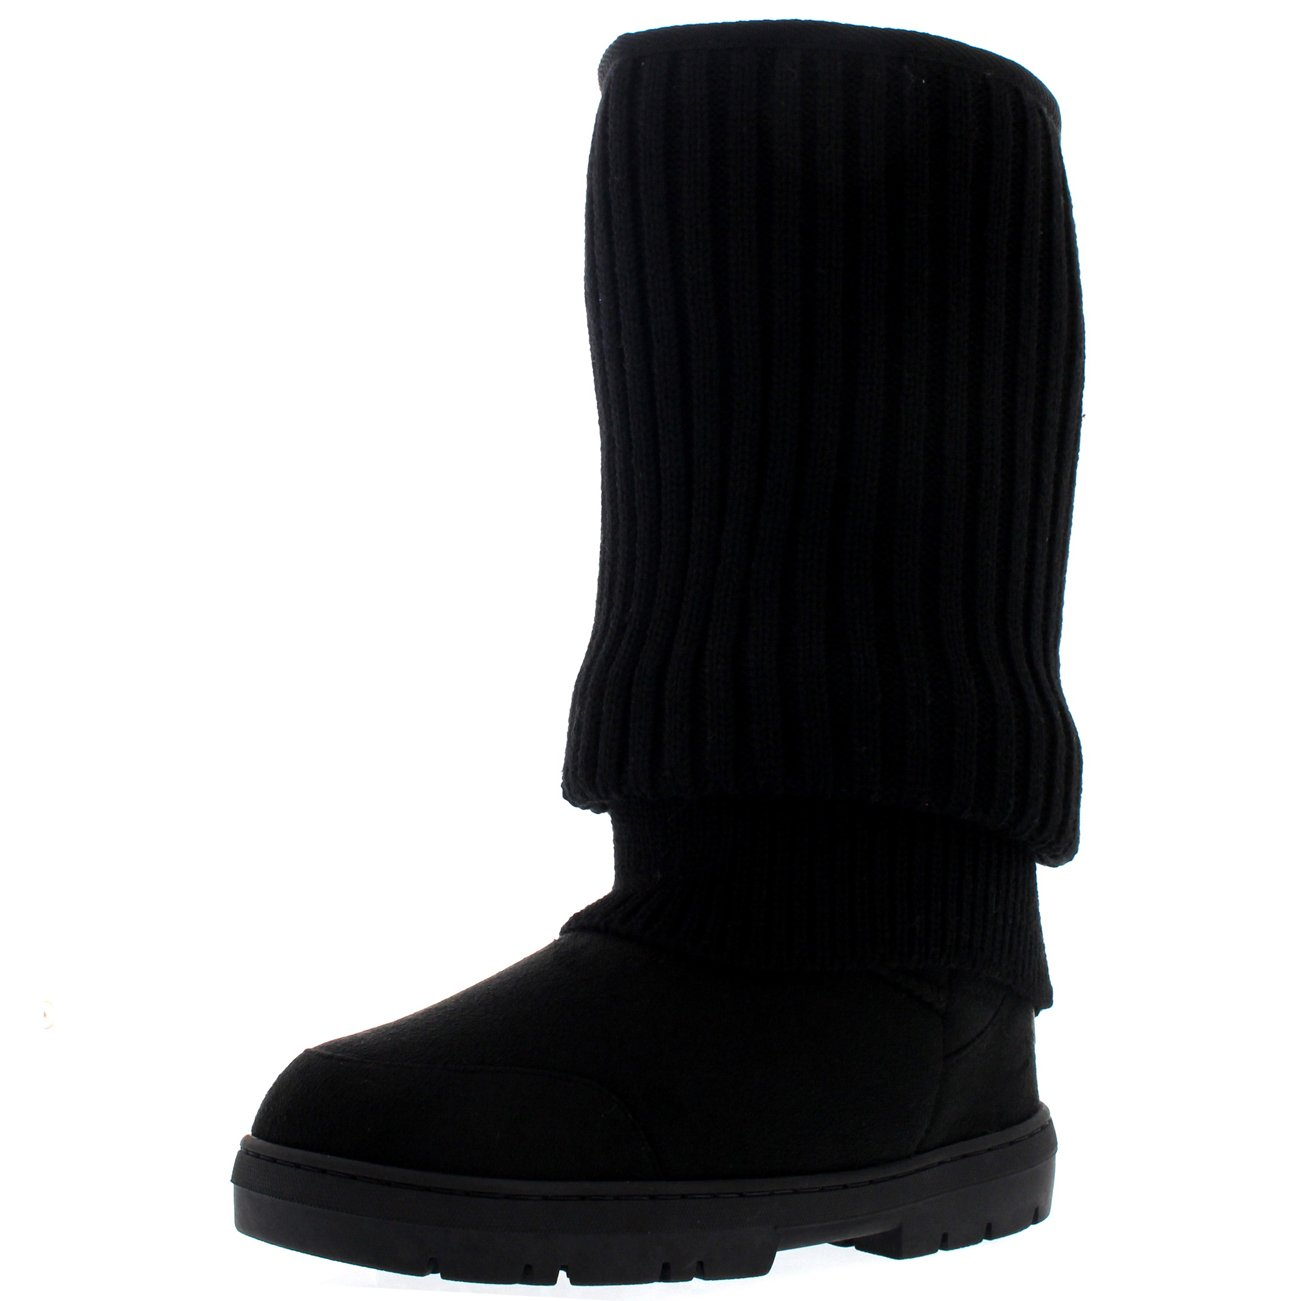 Womens Tall Knitted Cardy Slouch Winter Snow Rain Outdoor Warm Shoe Boots B00YUUVYEW 8 B(M) US|Black Knitted